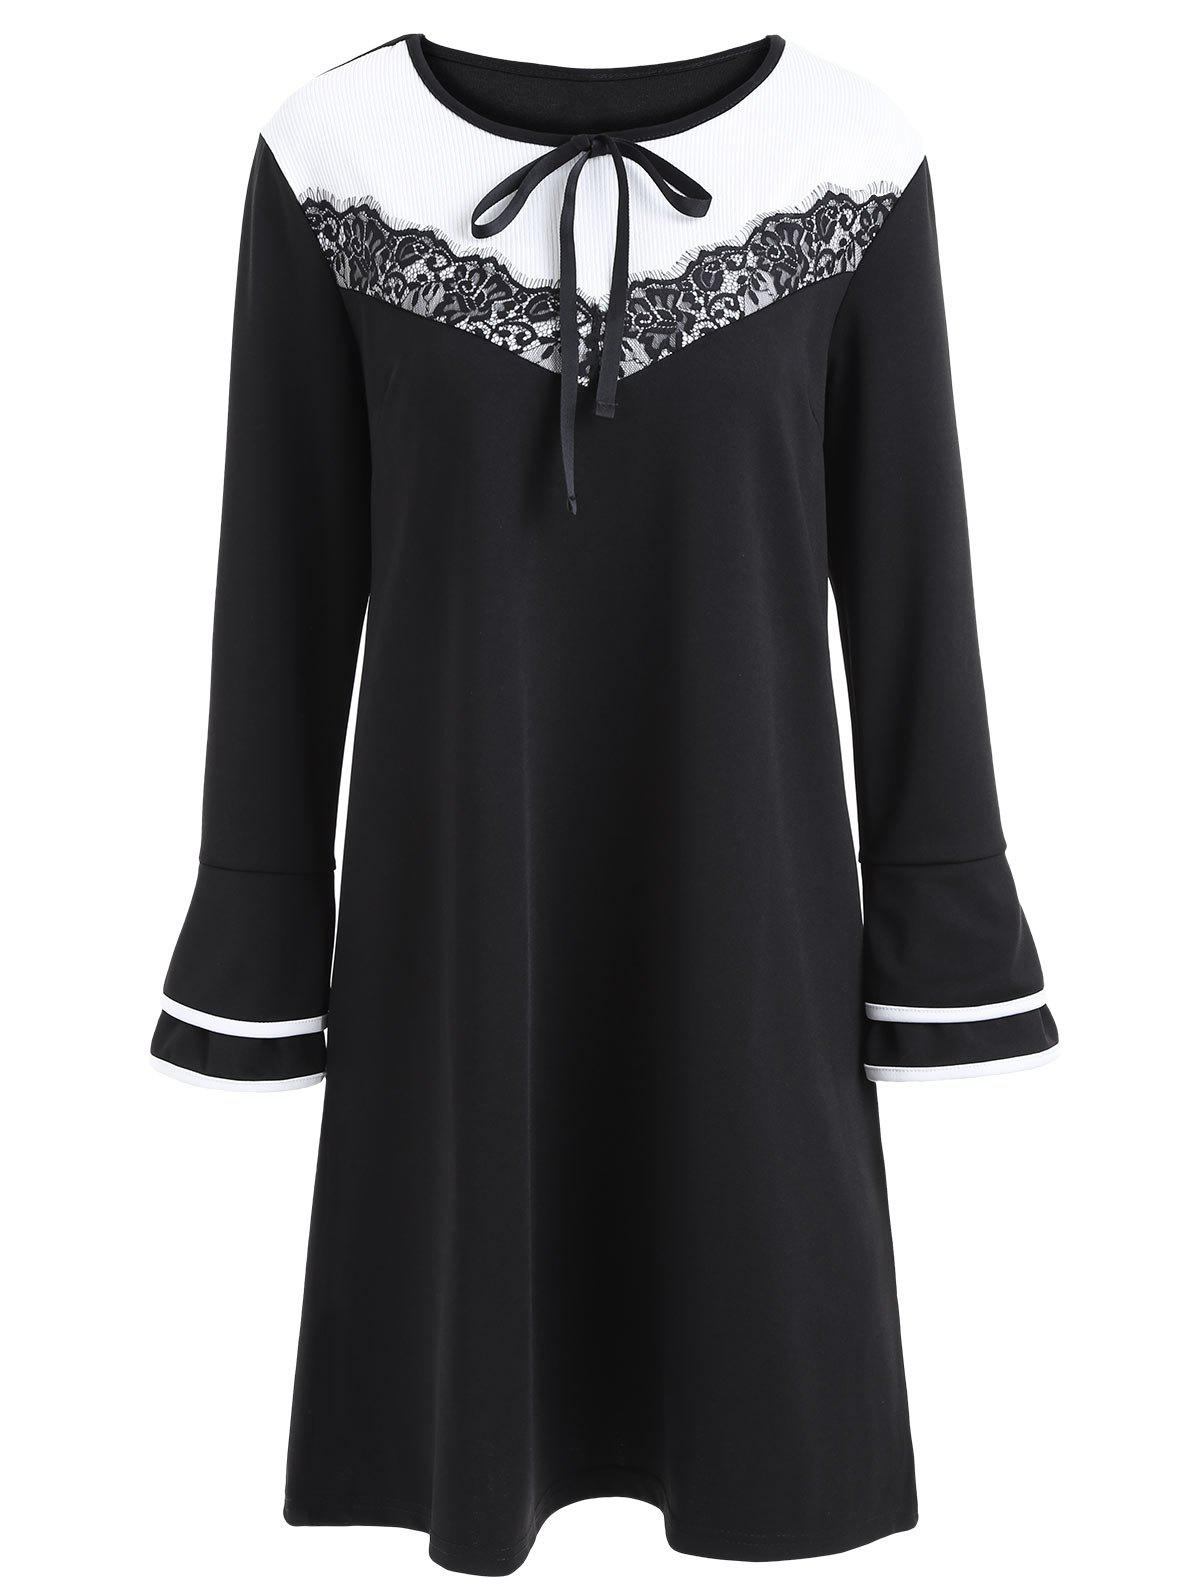 Plus Size Lace Insert Bell Sleeve Dress - BLACK 3XL